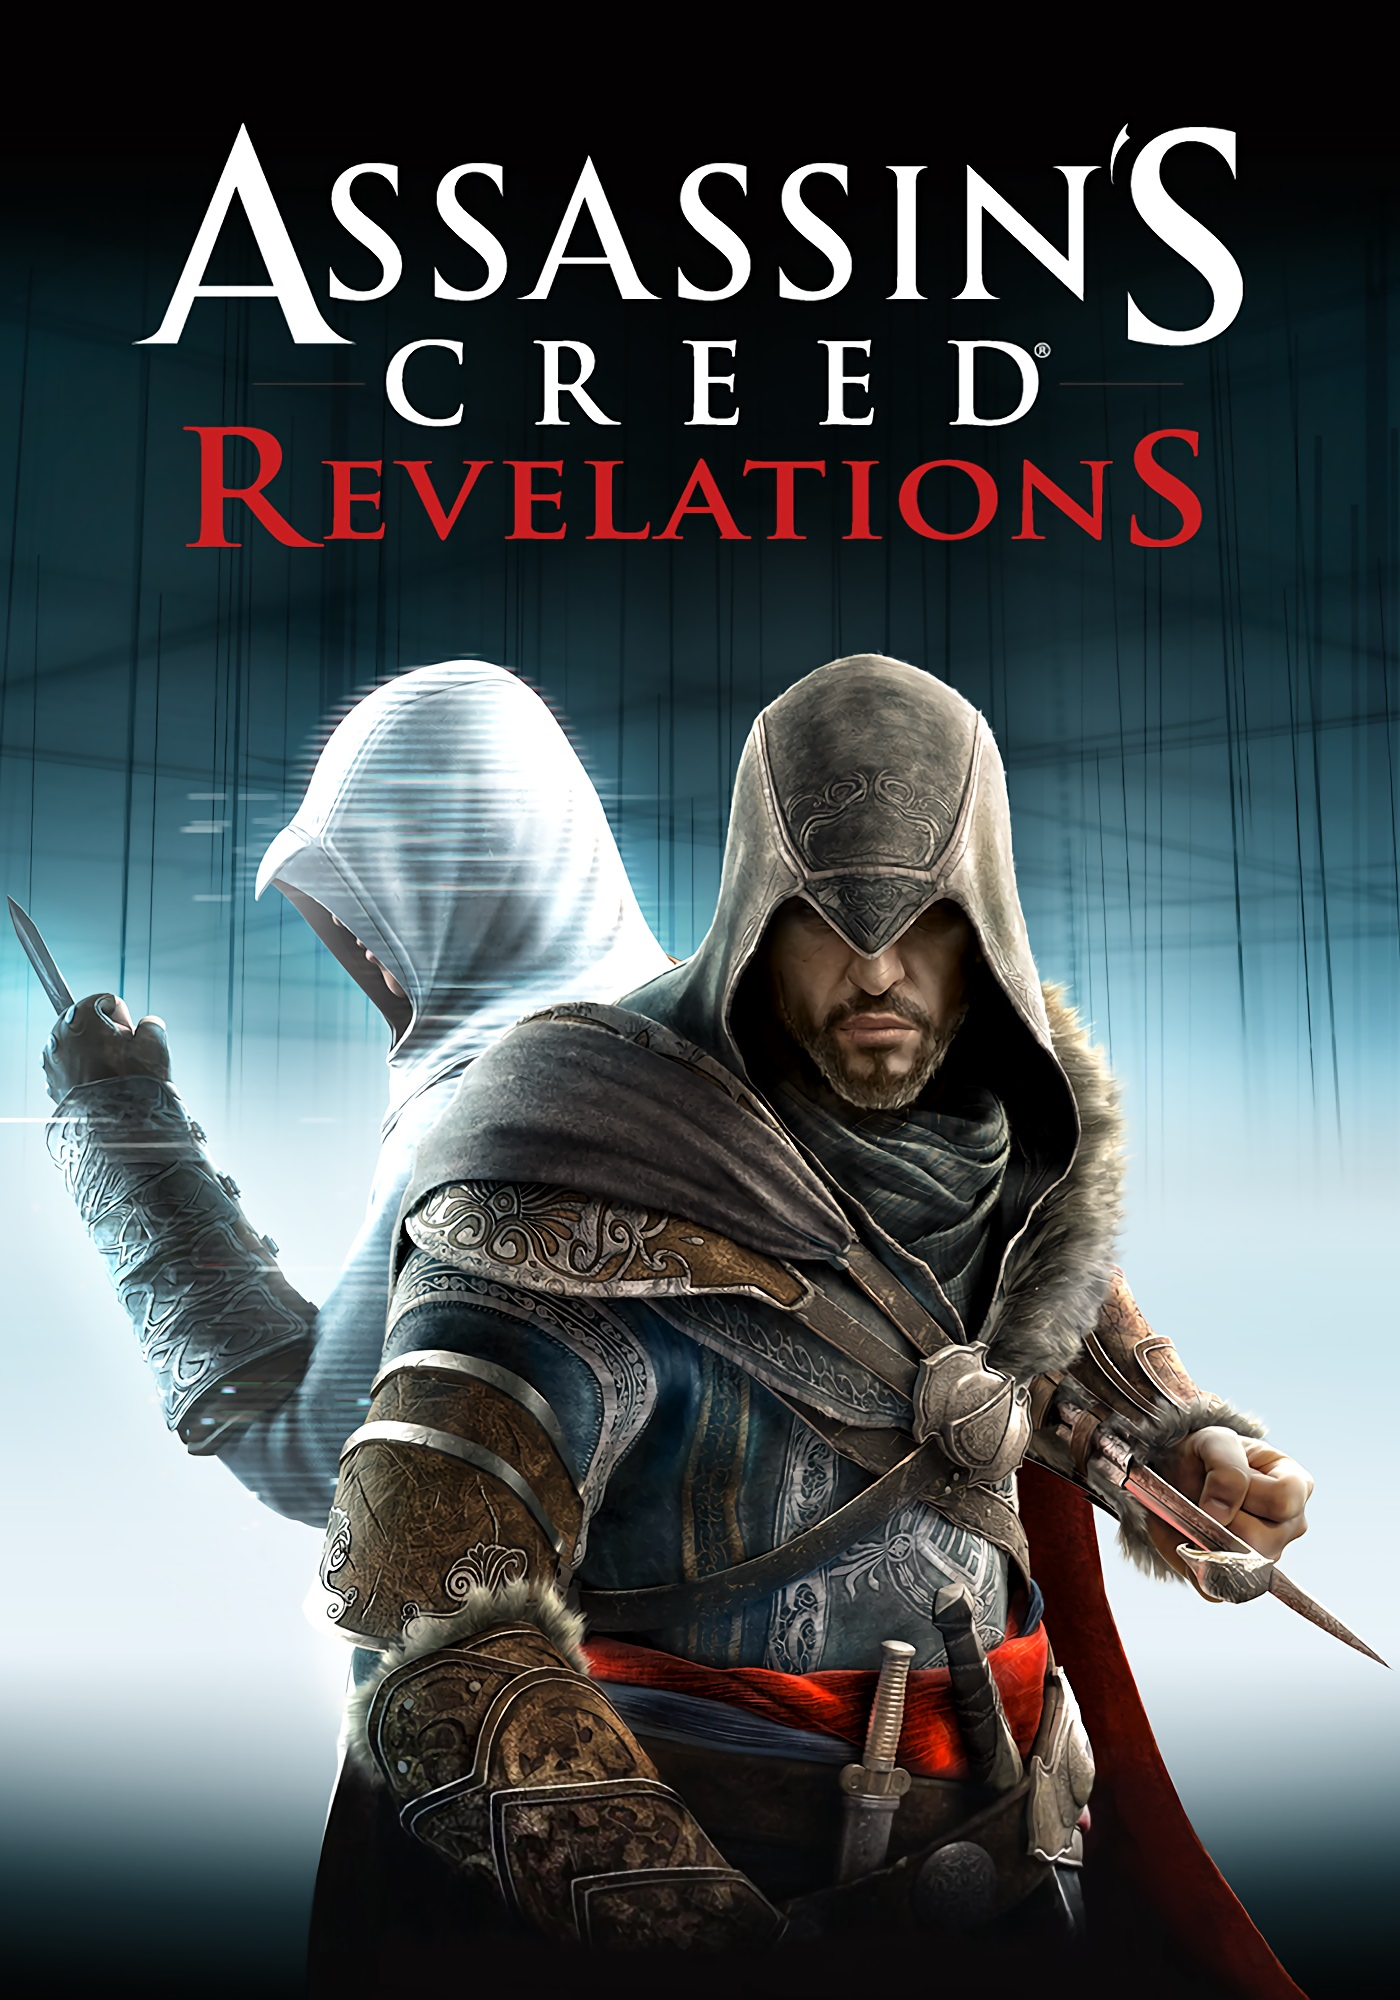 assassins creed movie release date in india